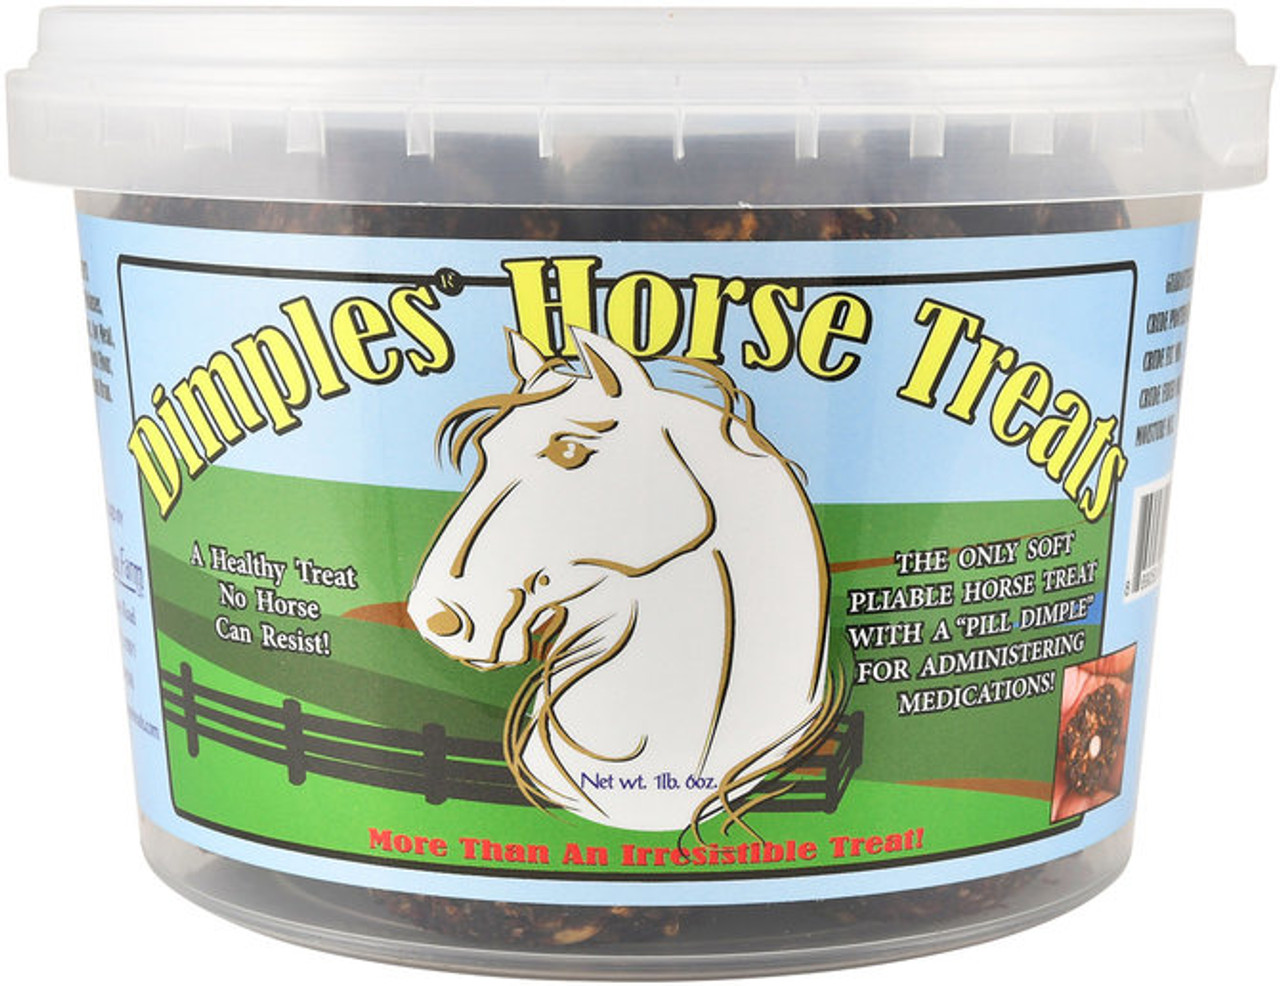 Dimples Horse Treats 1 Lb 6oz